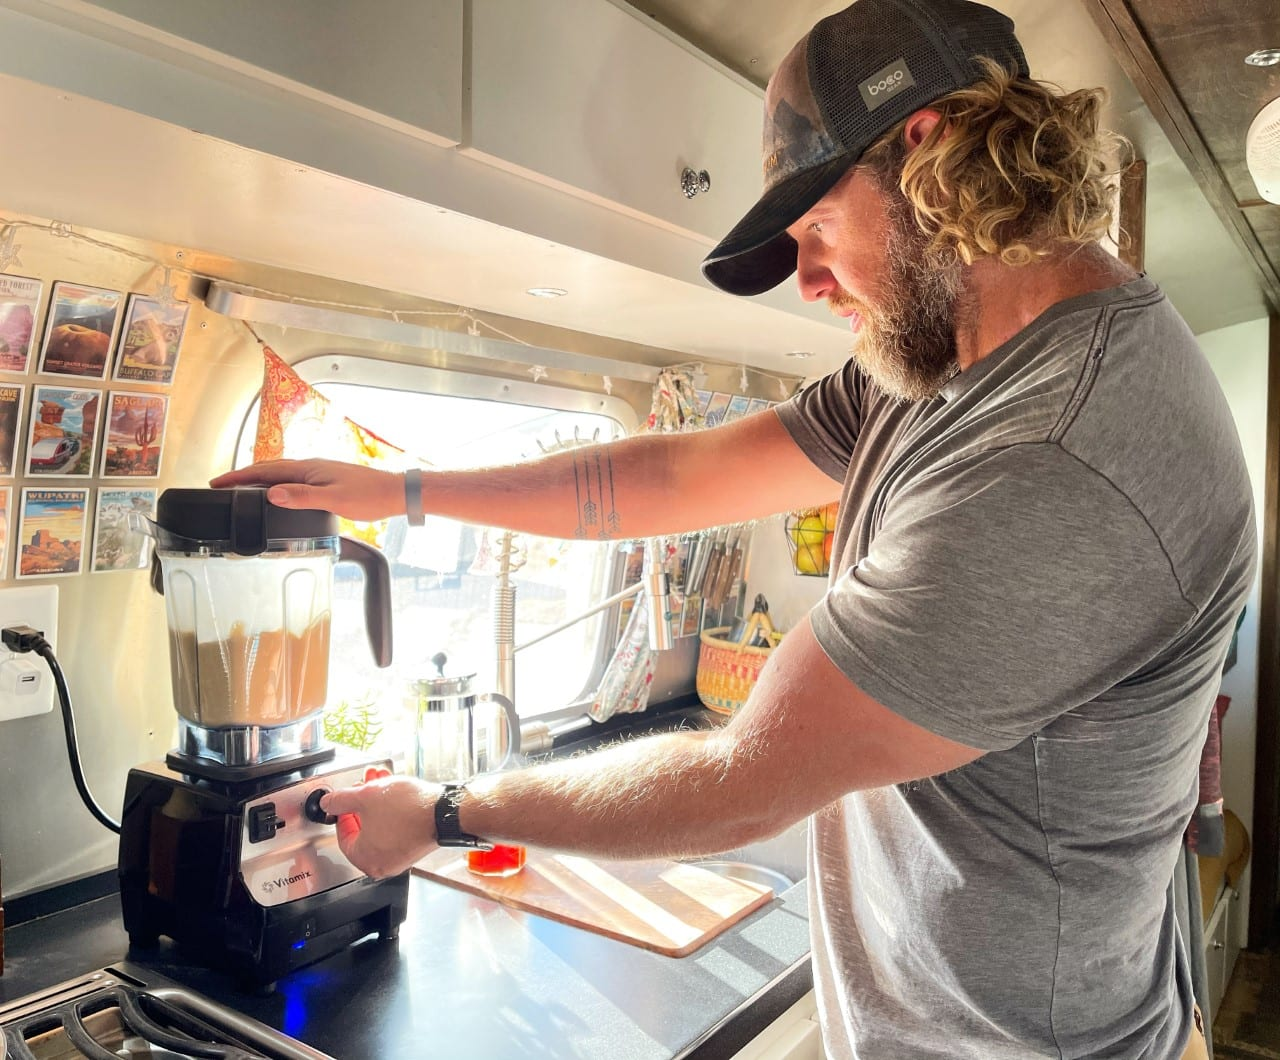 off-grid power a blender in airstream trailer